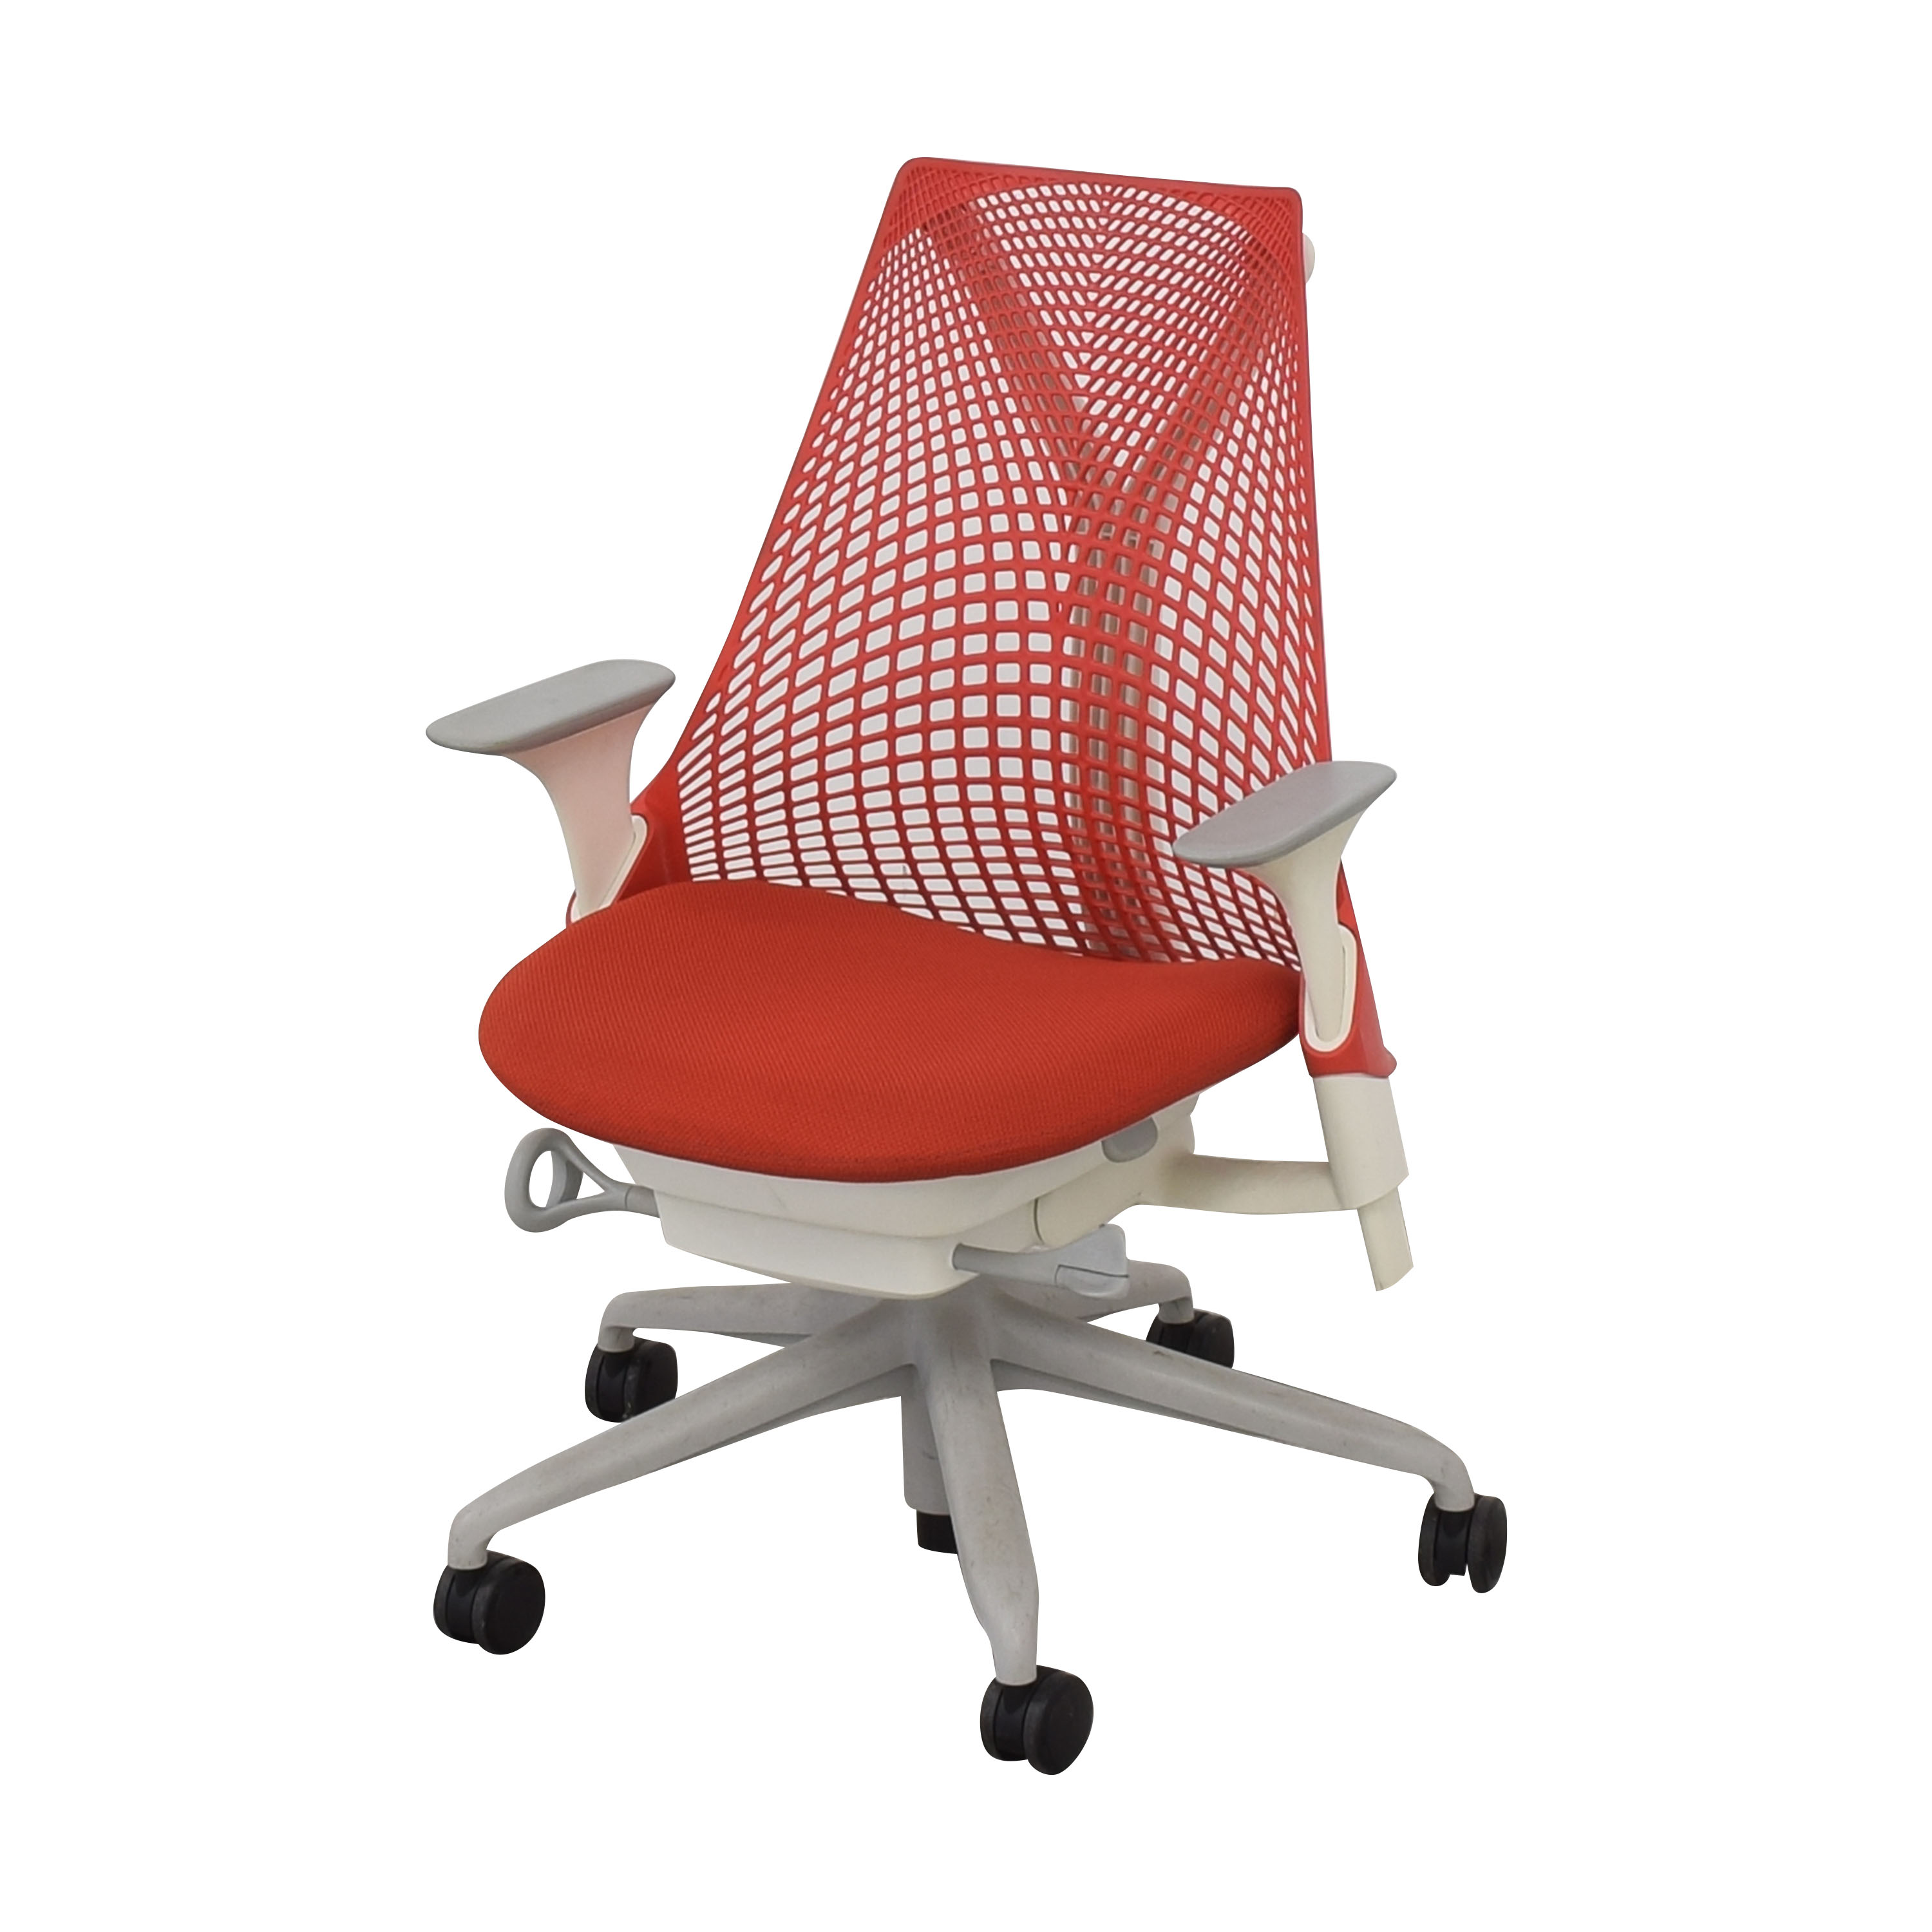 Herman Miller Herman Miller Sayl Chair for sale